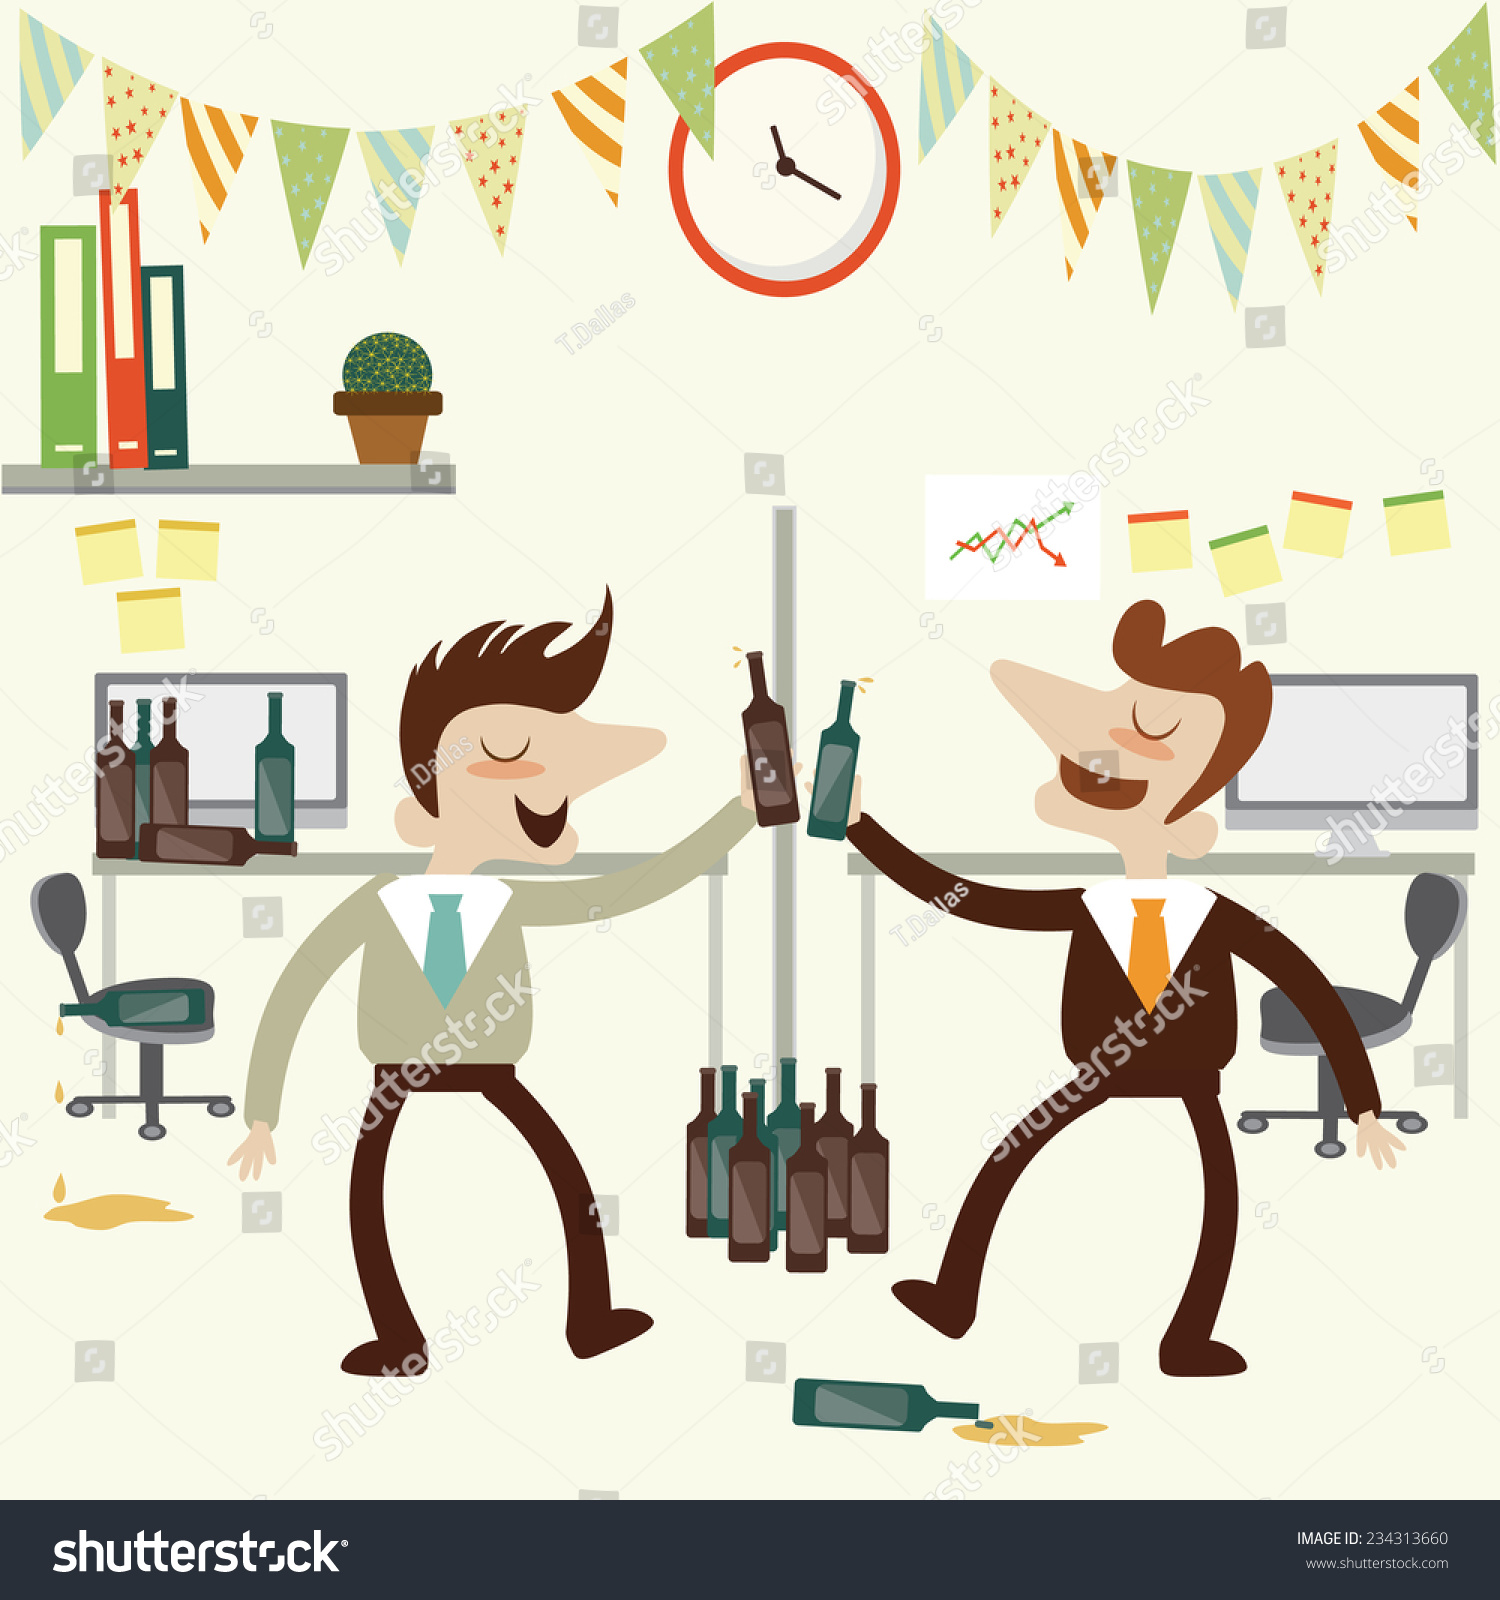 office party business man over drunk stock vector  office party business man over drunk vector cartoon design